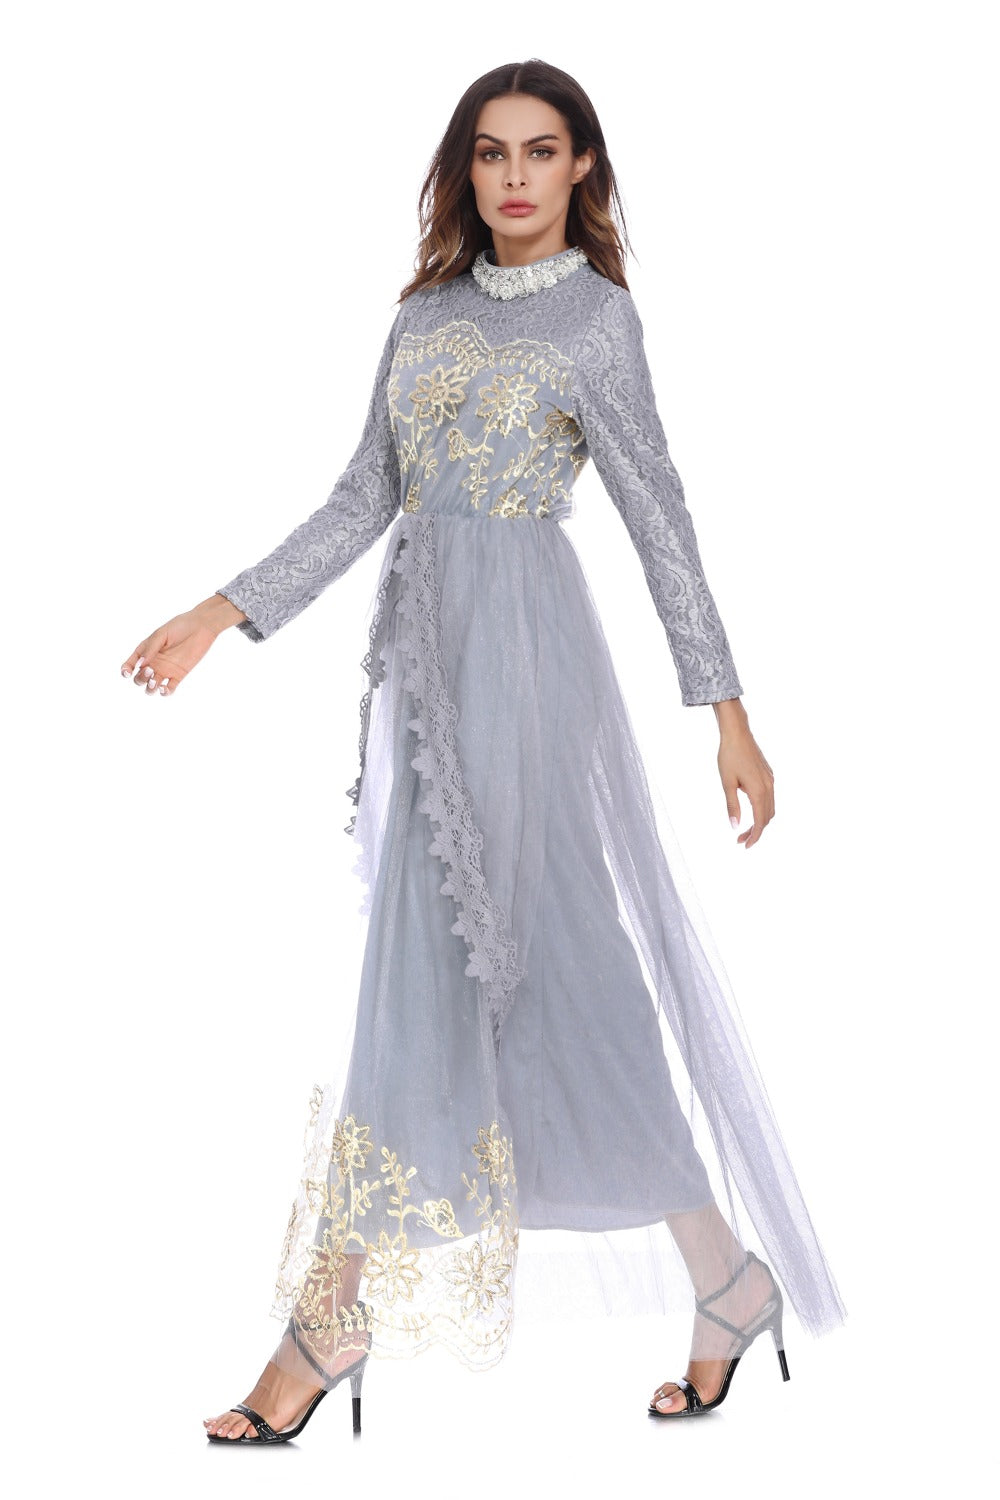 Trendy Lace Net Yarn Kaftan - Hifza Apparel